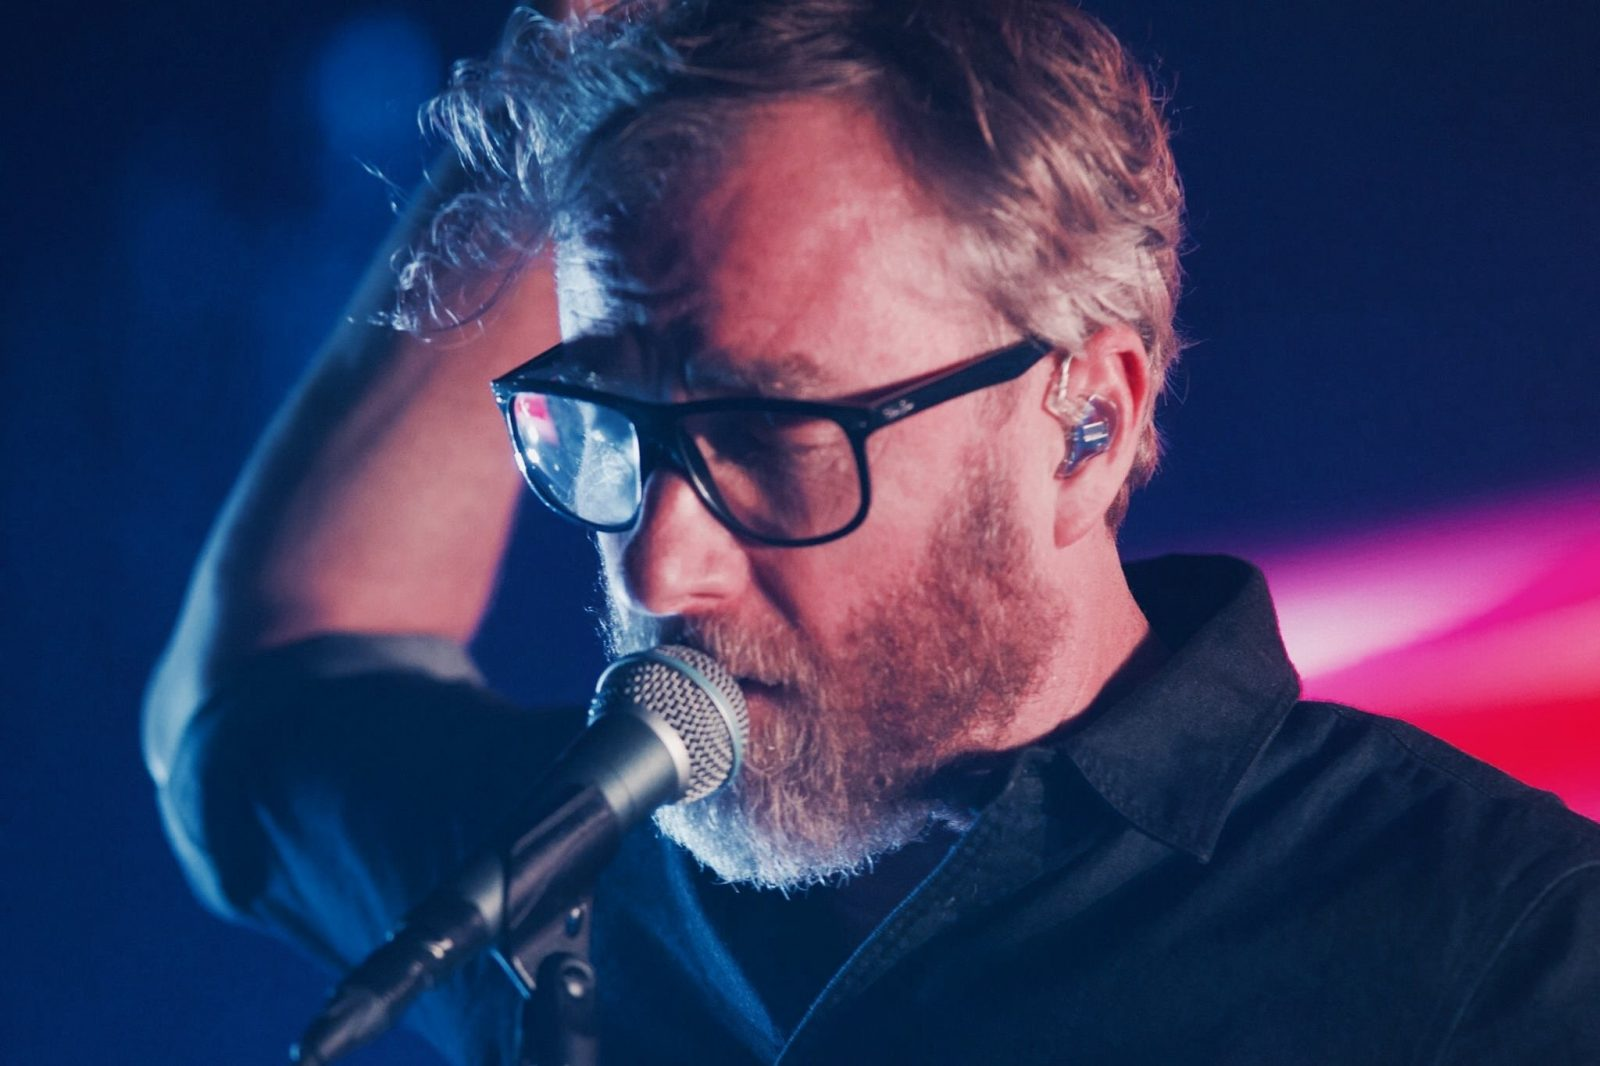 an evening with: The National